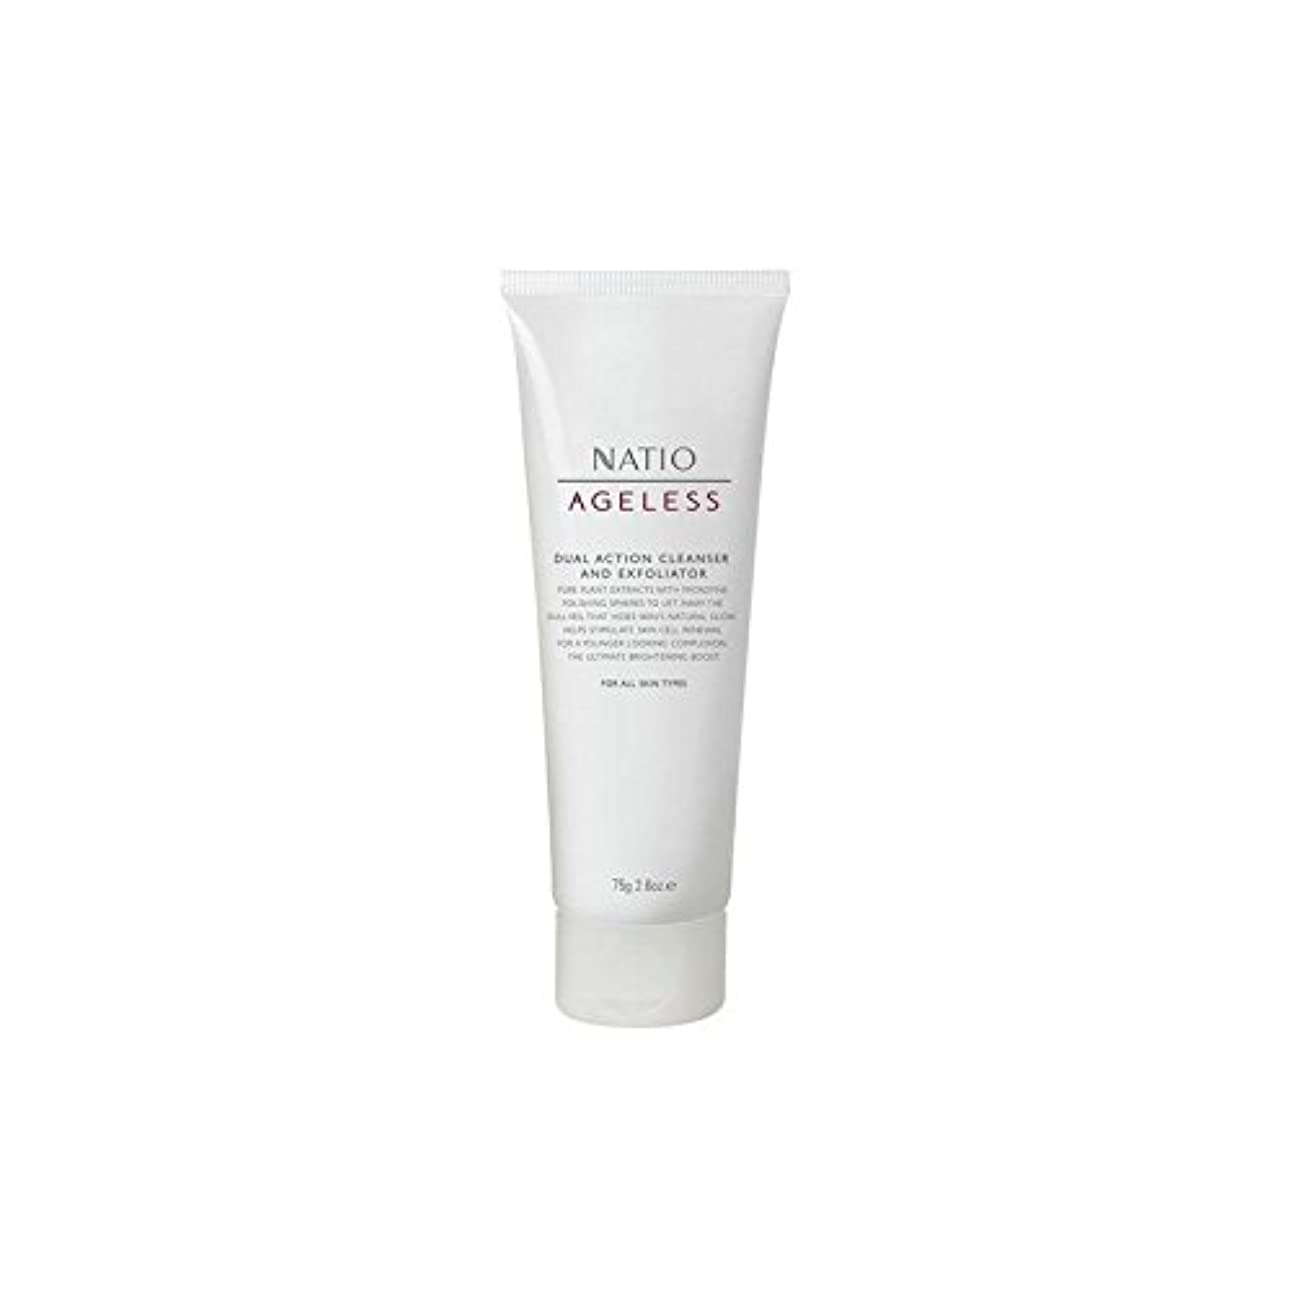 Natio Dual Action Cleanser And Exfoliator (75G) (Pack of 6) - デュアルアクションクレンザーとエクスフォリエーター(75グラム) x6 [並行輸入品]